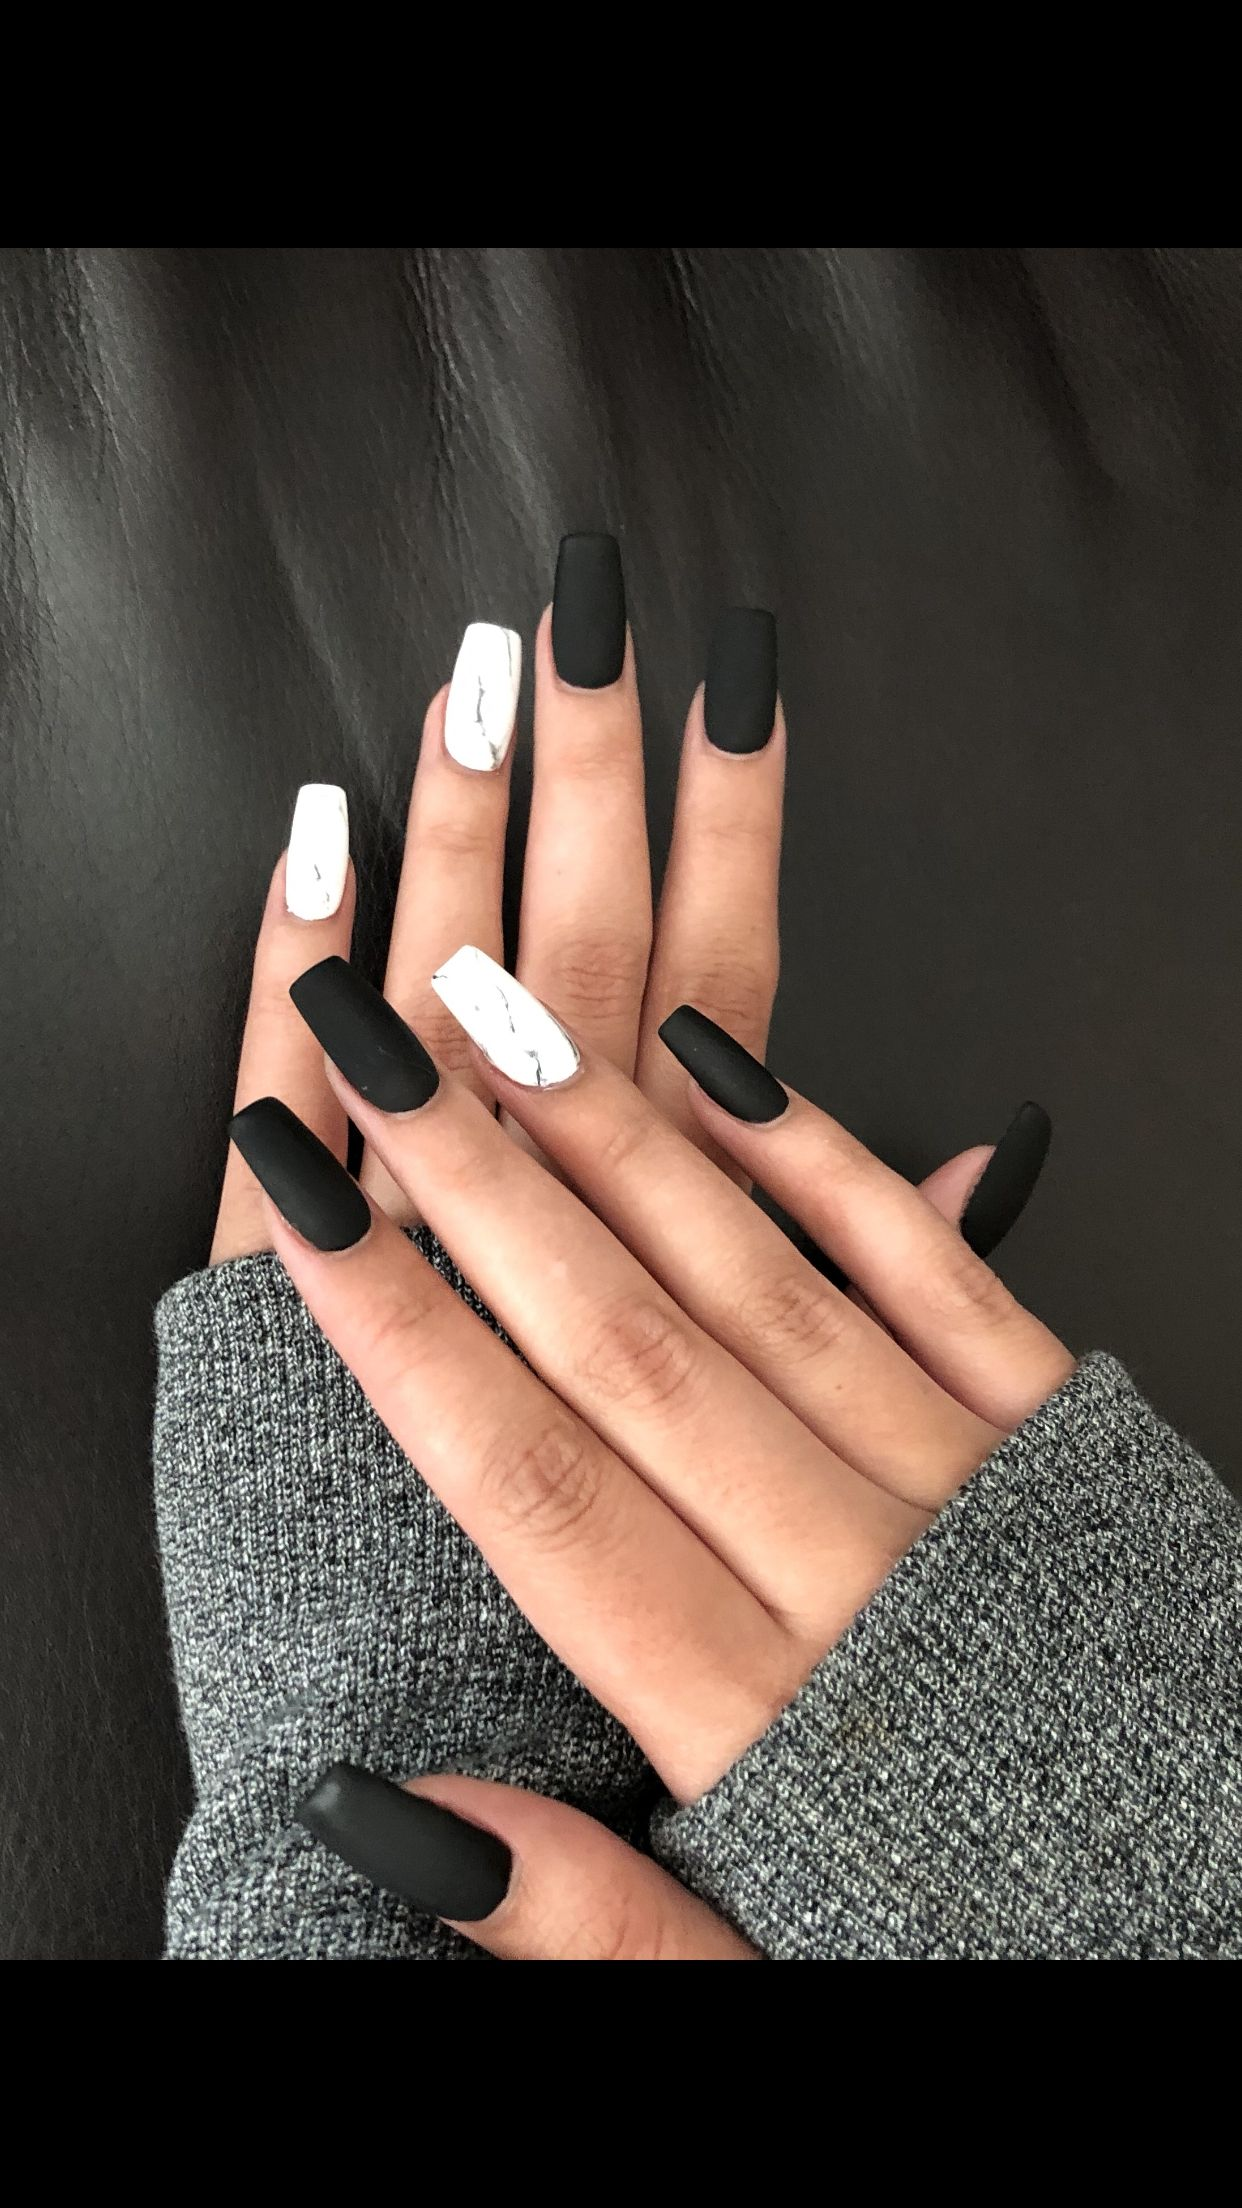 25 Matte Black Coffin Nail Ideas Trend In Cool 20 Black Gold Nails Gold Nails Matte Nails Design